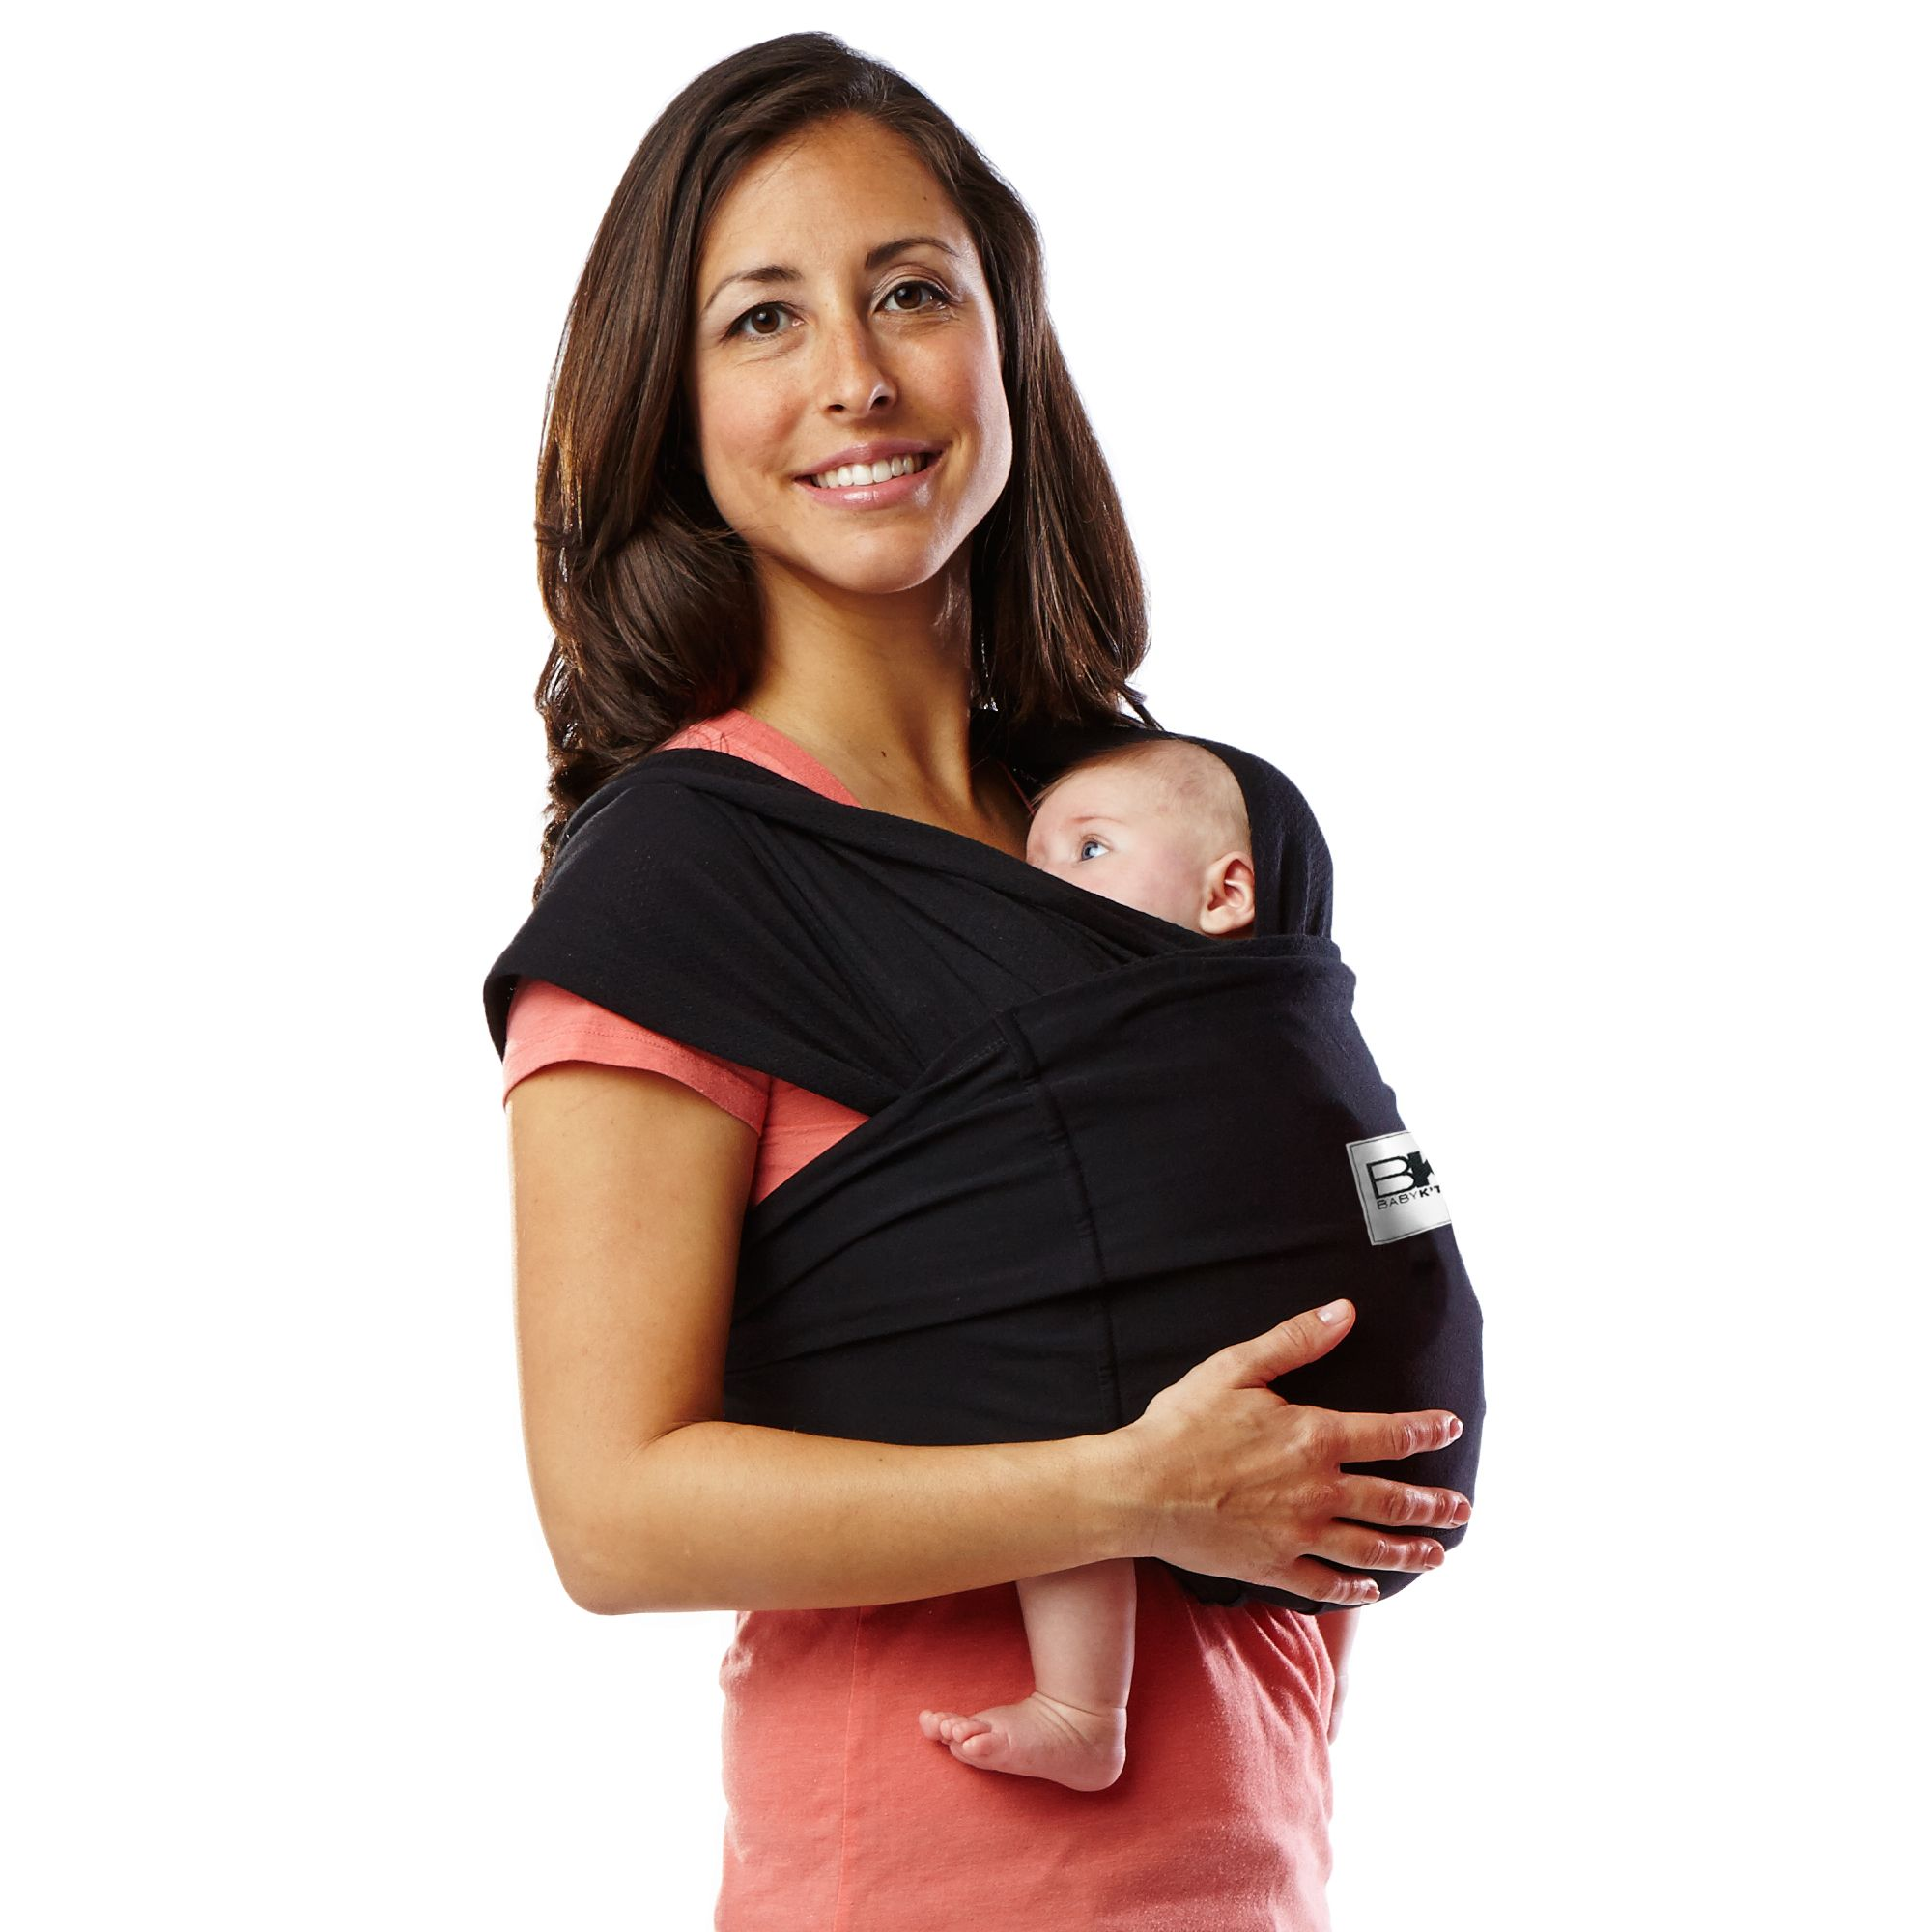 Baby K tan Baby Carrier in Black BABY